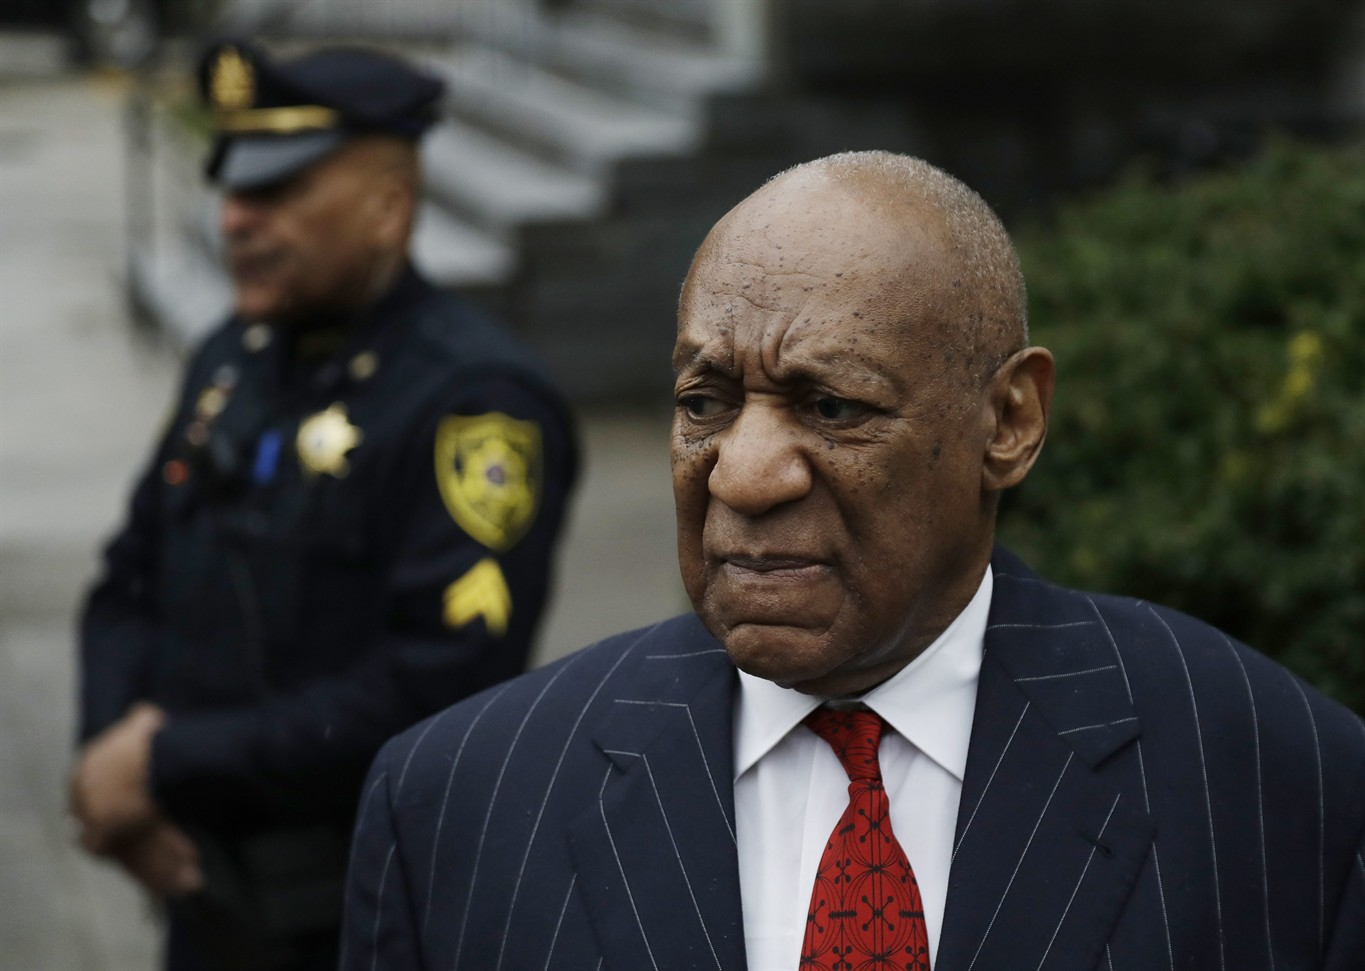 Bill Cosby trial: Judge pushes back against demands he step aside